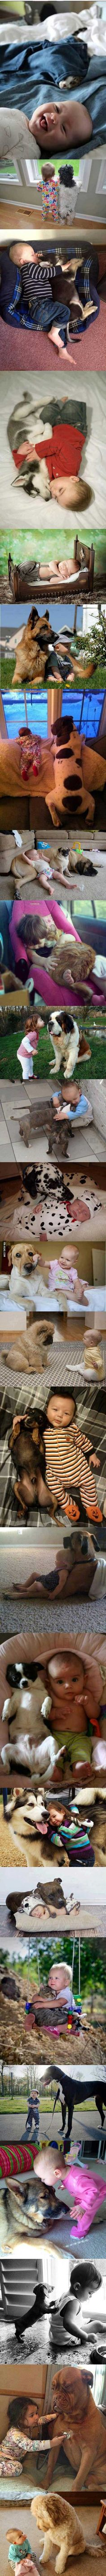 Why kids need pets.( 26 Pics)!